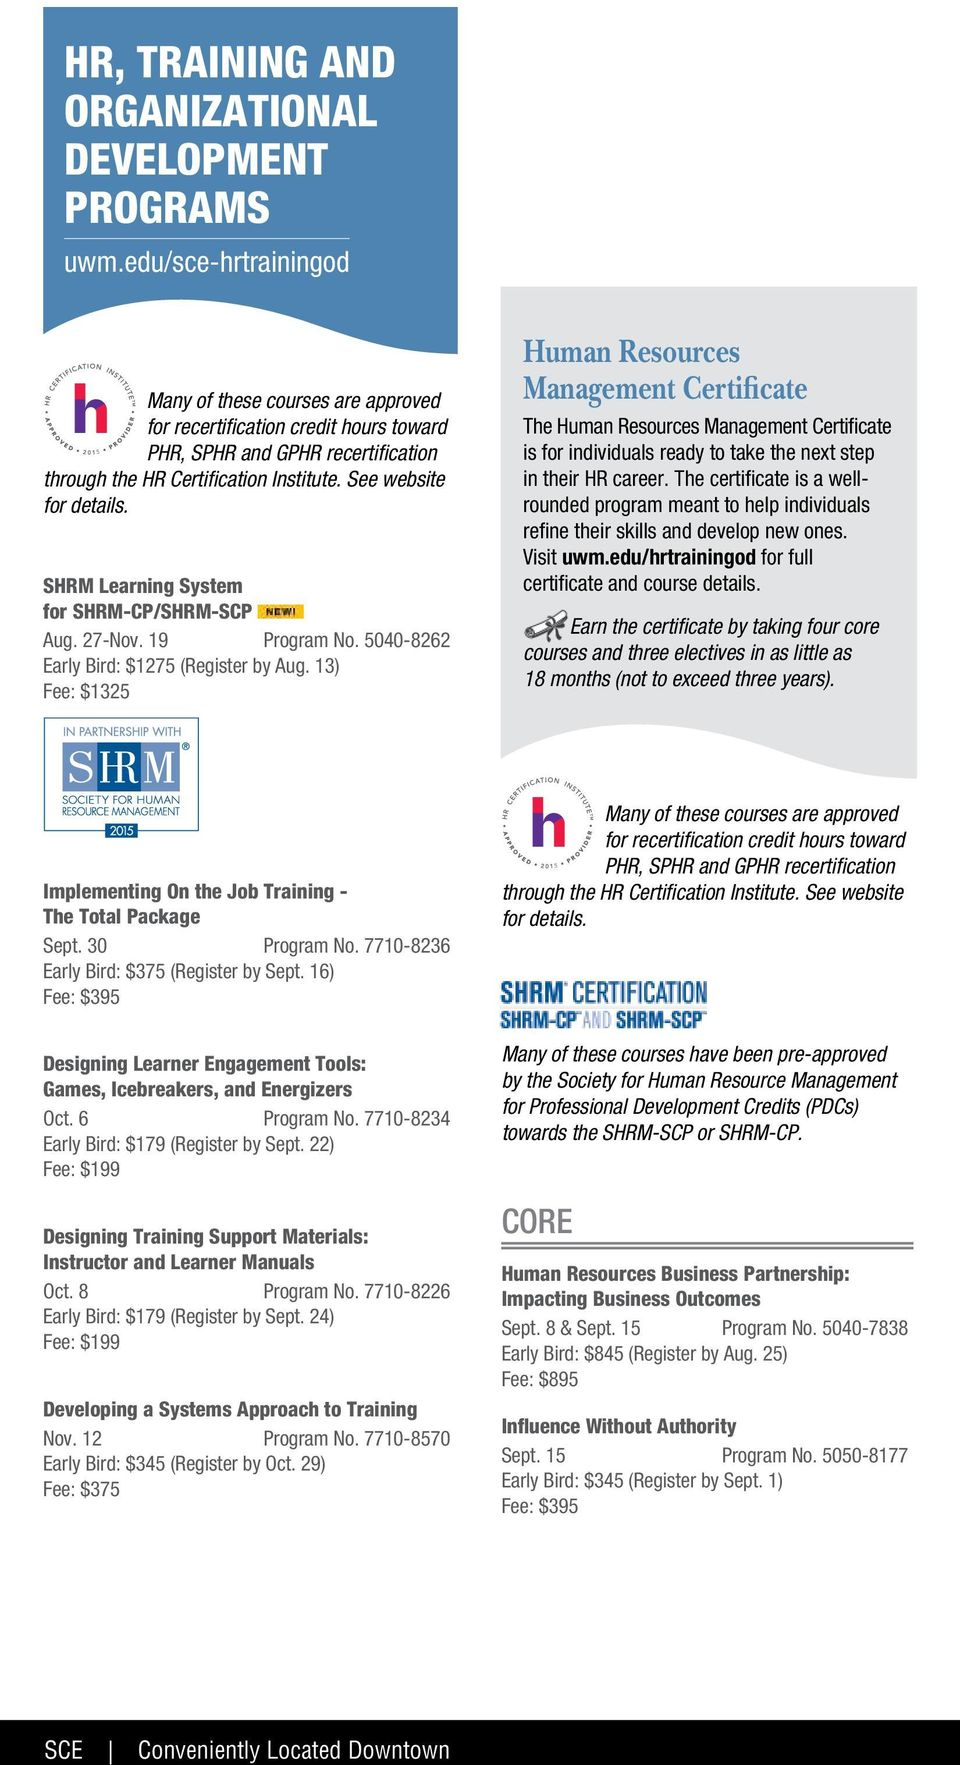 SHRM Learning System for SHRM-CP/SHRM-SCP Aug. 27-Nov. 19 Program No. 040-8262 Early Bird: $127 (Register by Aug.